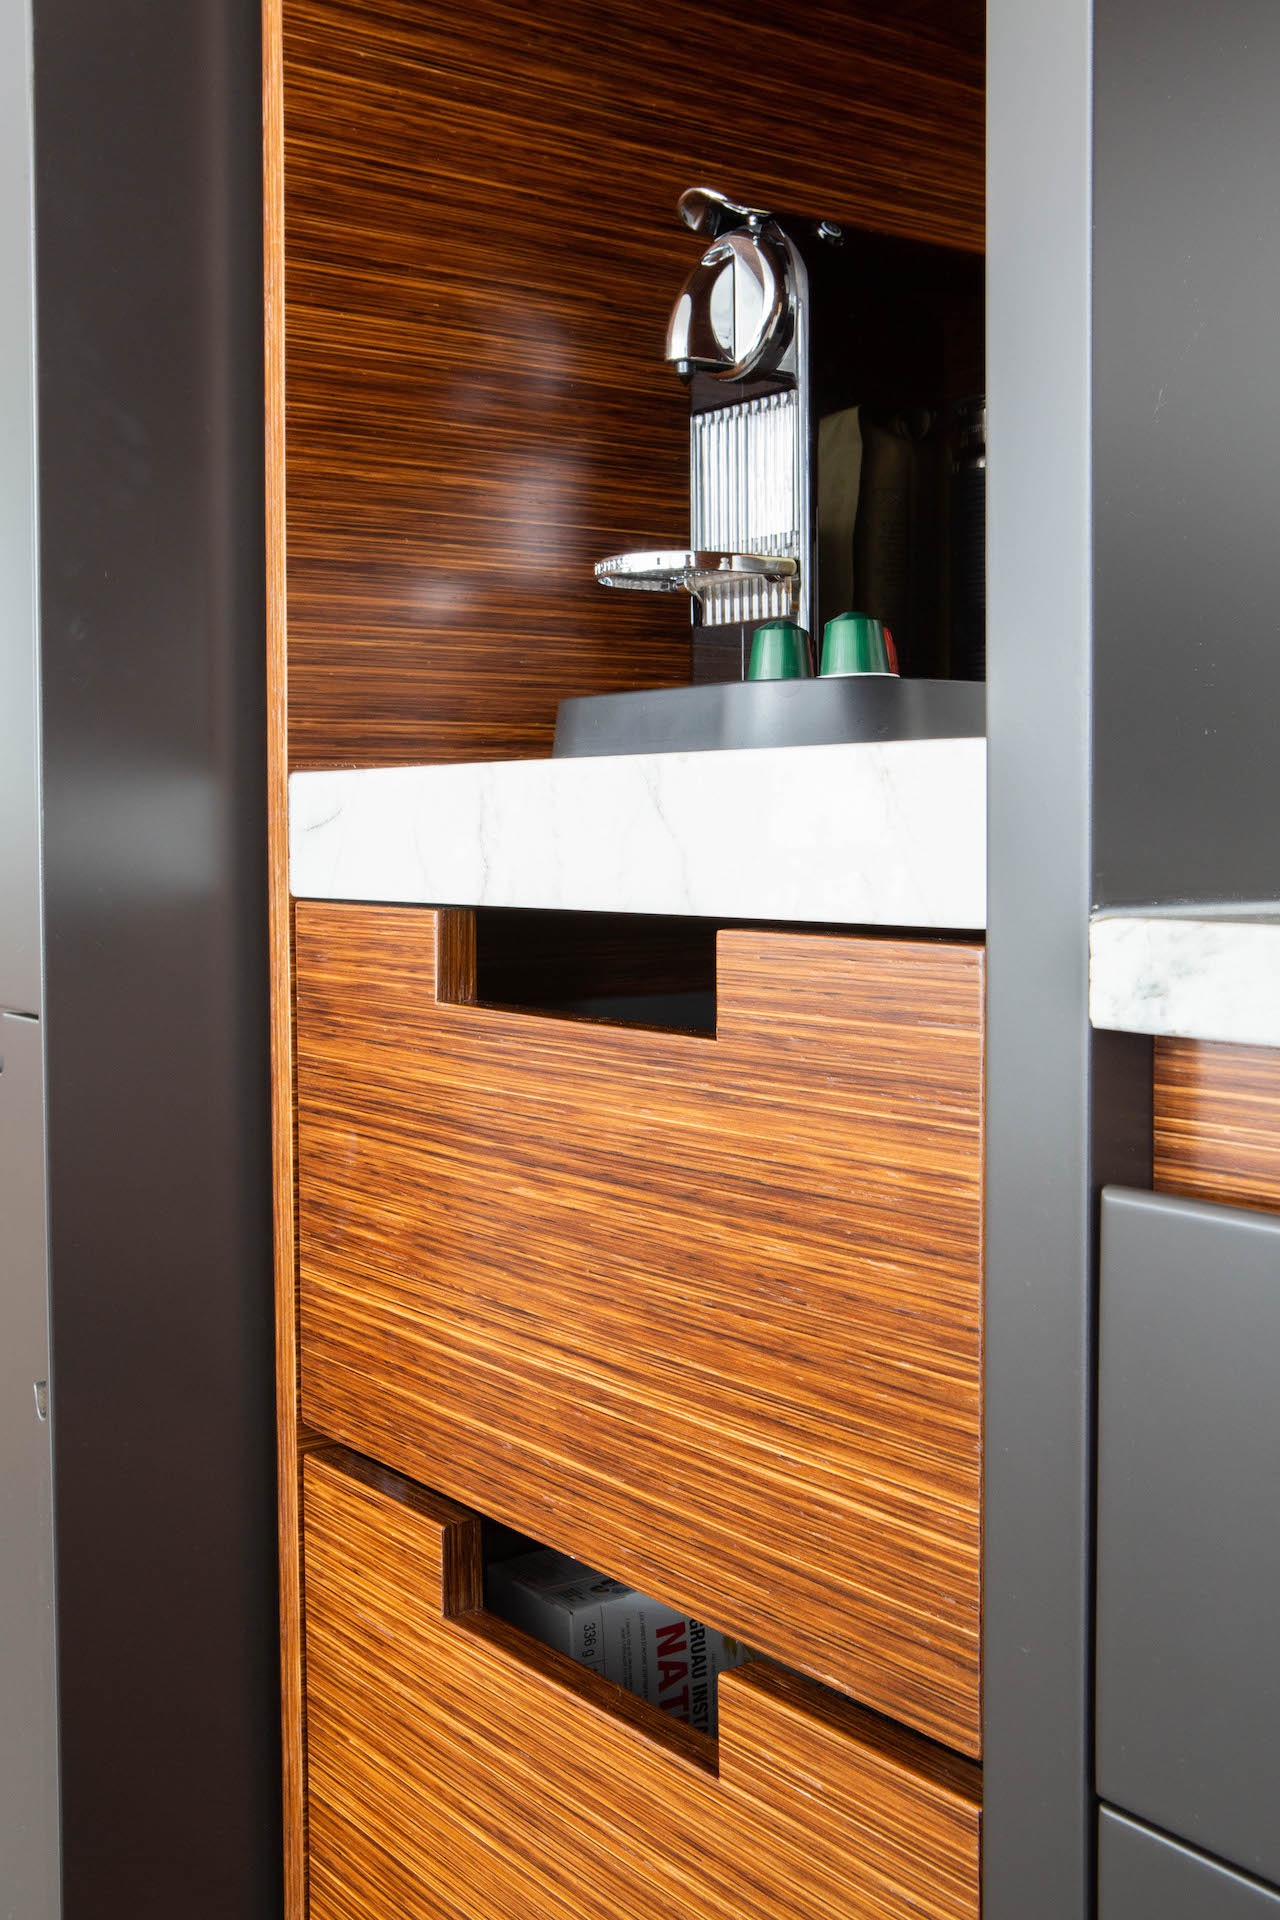 open cabinet with wood drawer and espresso machine